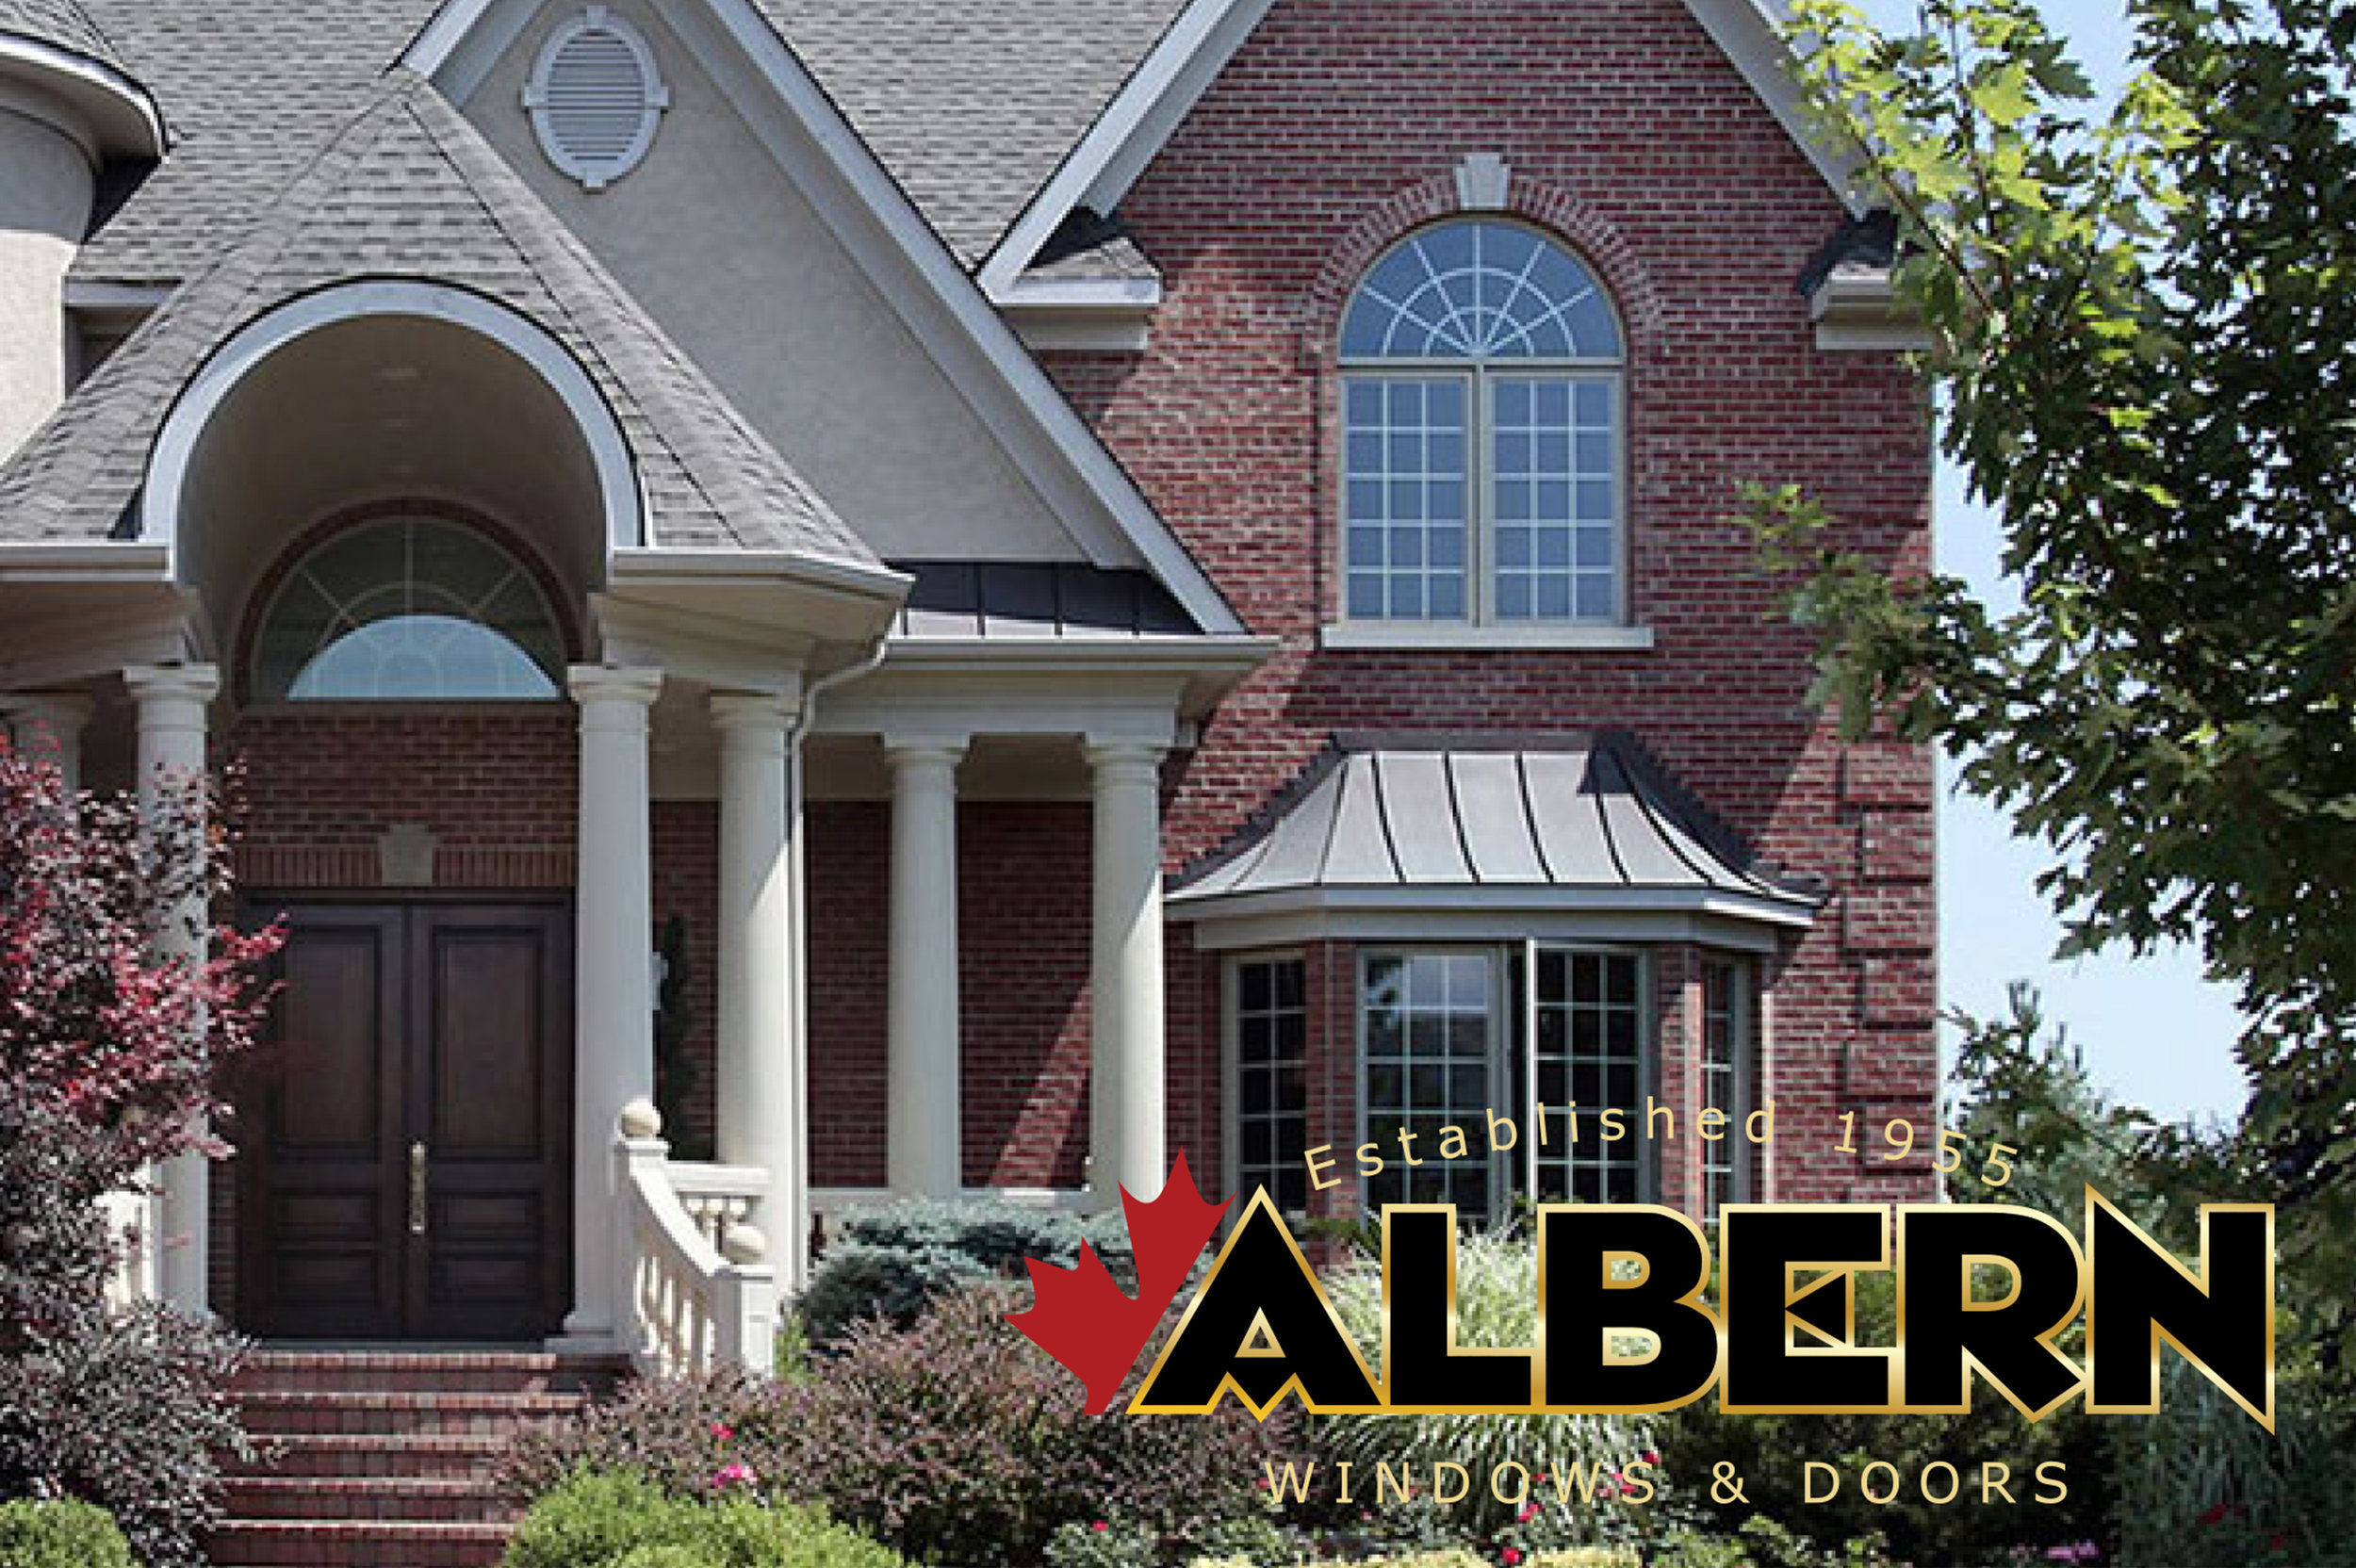 Albern - Created ground-up web space with fresh imaging and promotional 4K videos. Introduced Google SEO in place of existing redundant advertising, coupled with custom web domain.Outstanding family owned business right here in Ontario and Established in 1955! They have sold and installed more windows and doors to people in Pickering/Ajax/Scarborough than just about anyone - 55,000 and counting. Jeff Neveu is a master sales lead - bar none the best in the business. Albern never lowers the bar for their customers, so why would they downgrade for digital media? They expect the best and are genuinely surprised when it's not delivered- we are very proud to have them as a client.www.albernwindowsanddoors.com